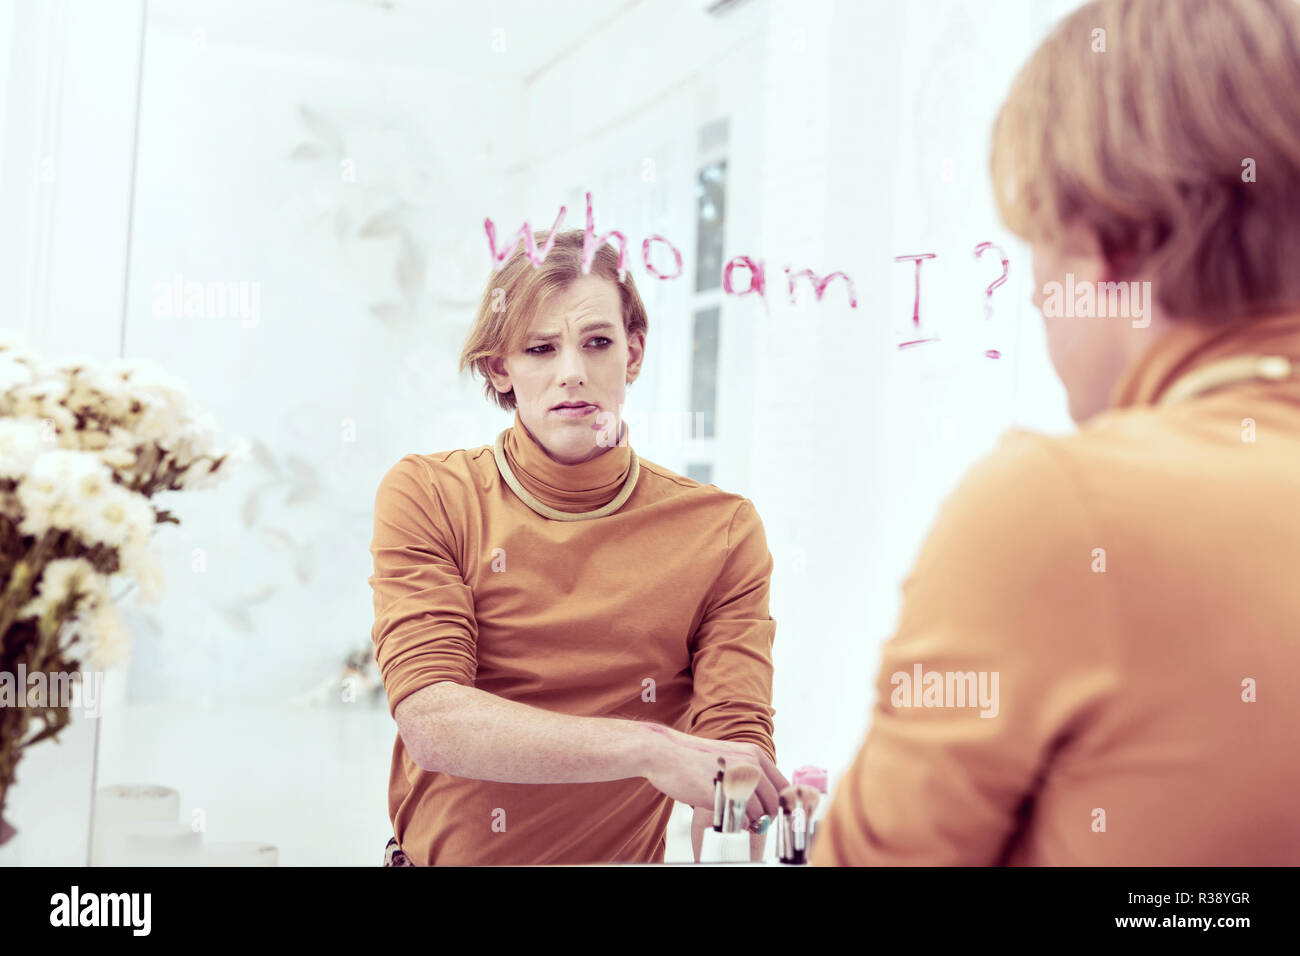 Frustrated abandoned transgender feeling bad about his identity - Stock Image